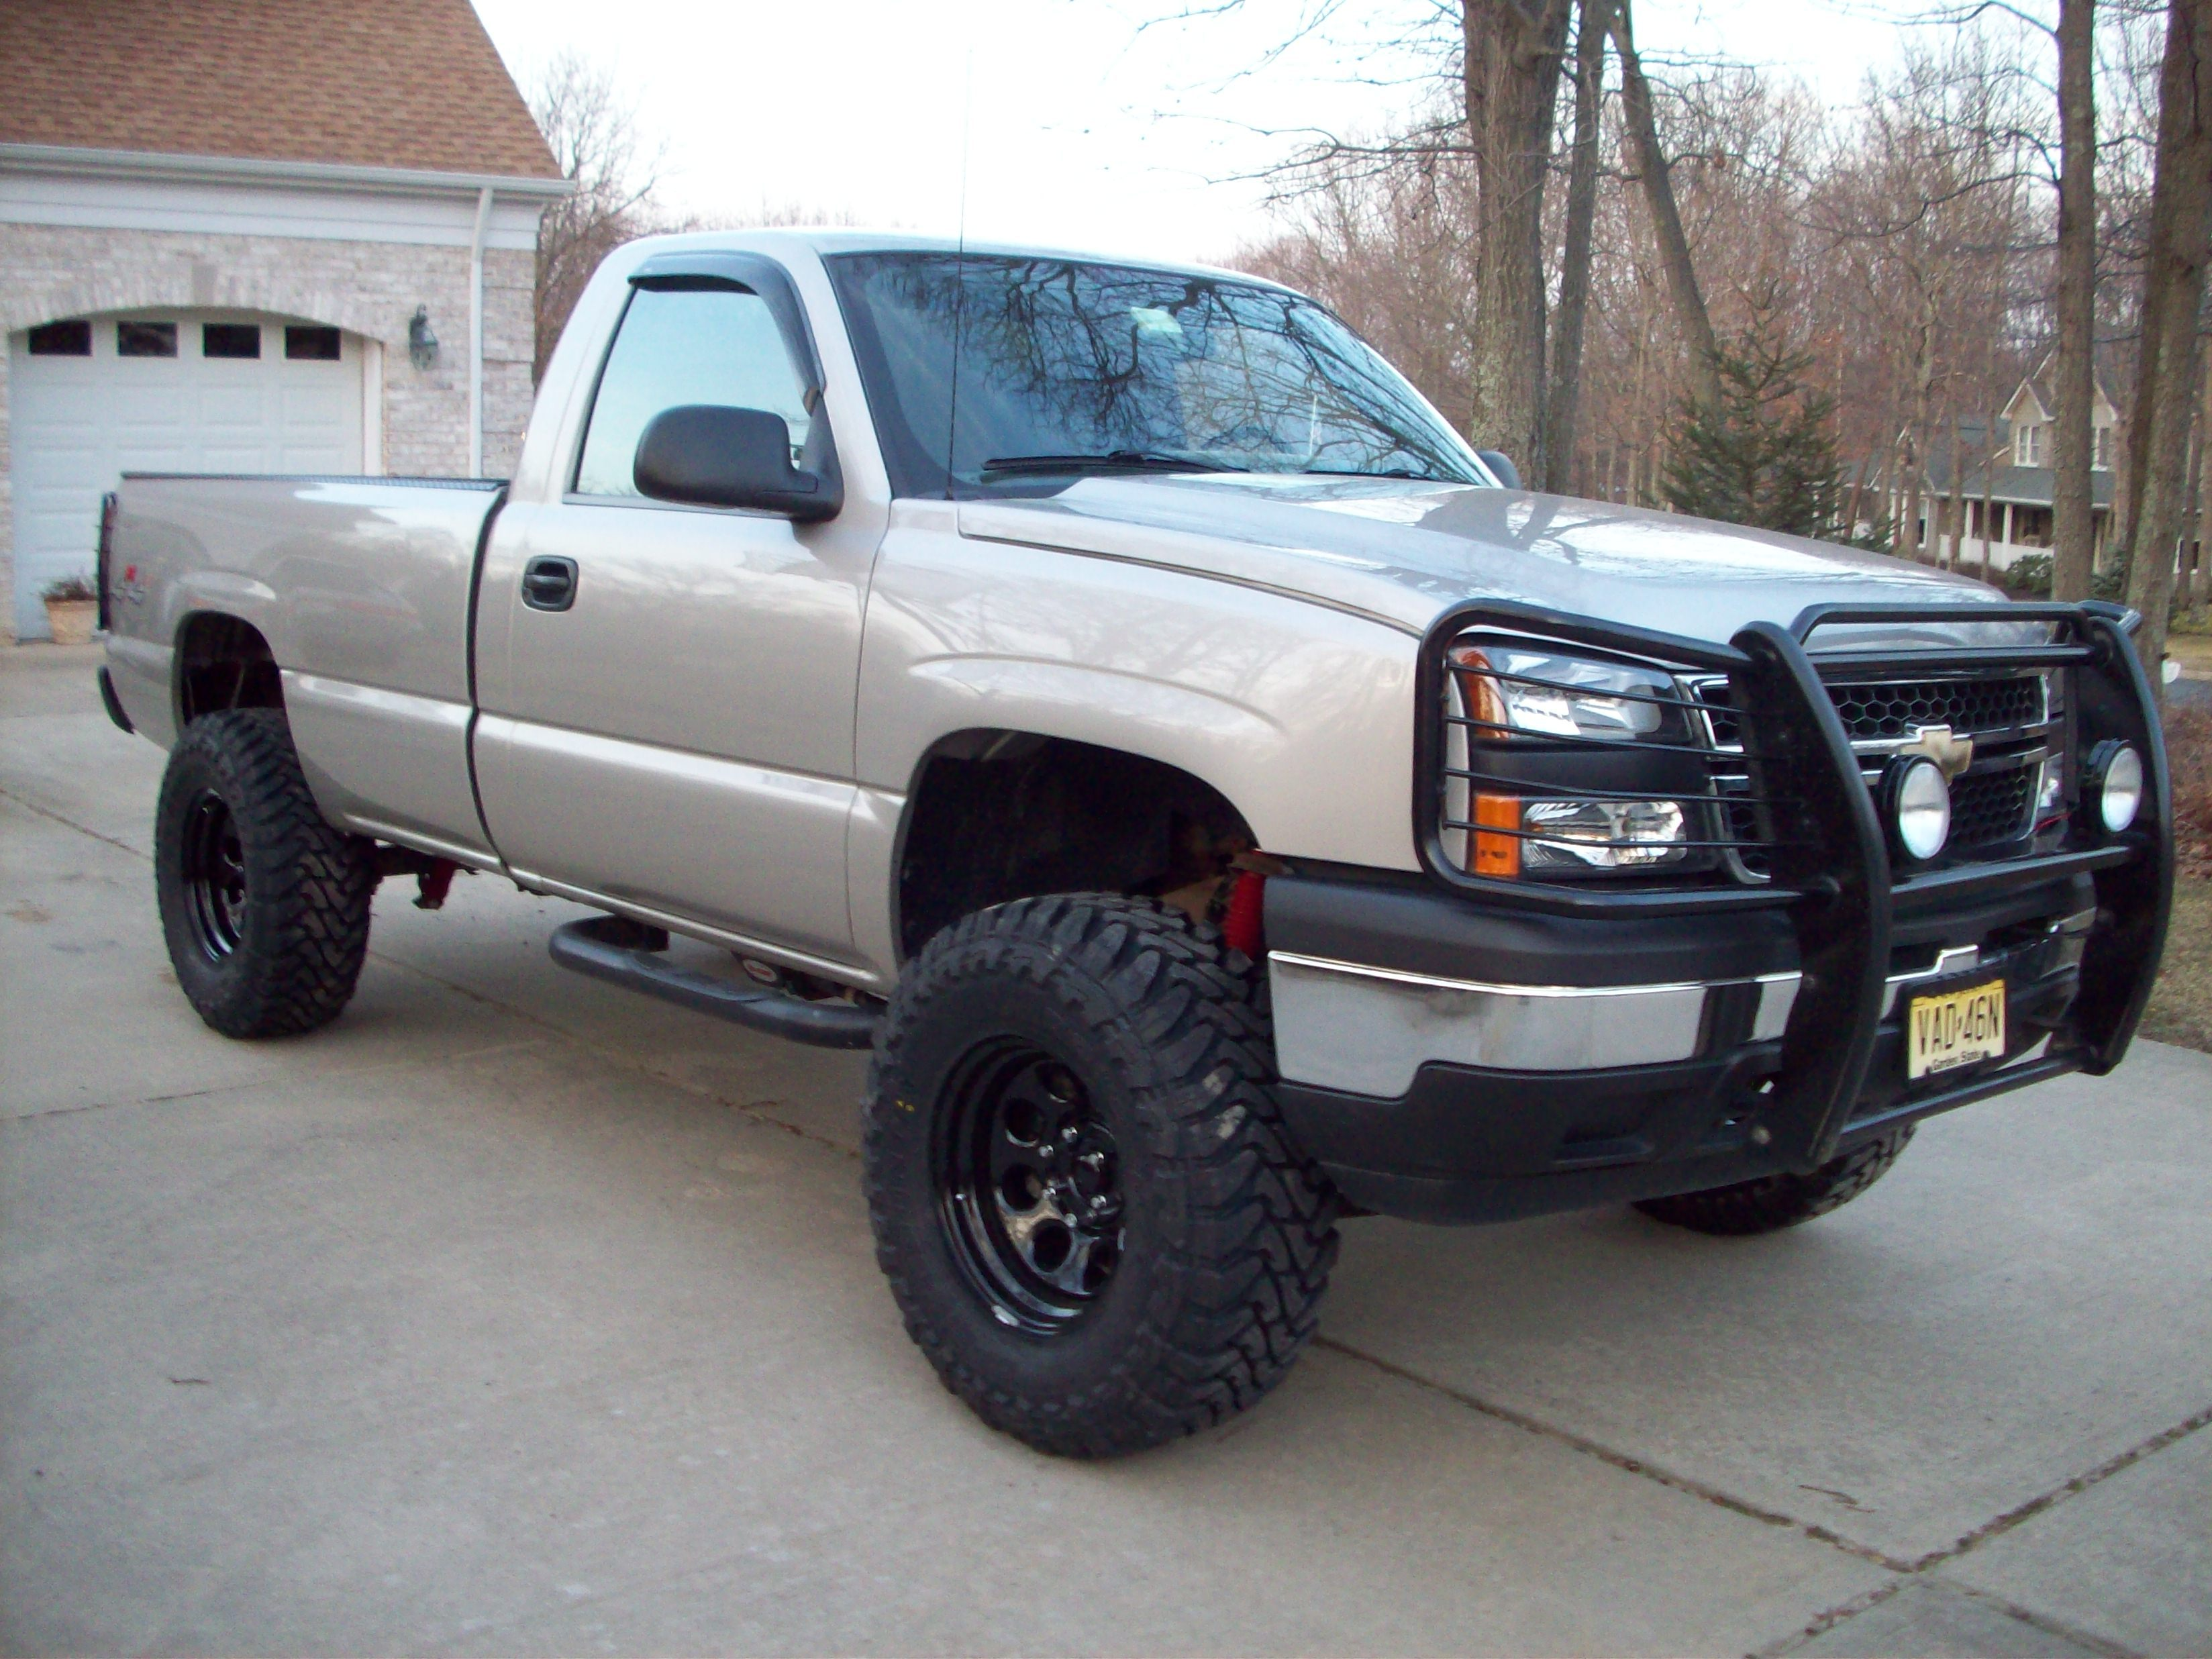 Wrecking Crew 2006 Chevrolet Silverado 1500 Regular Cab